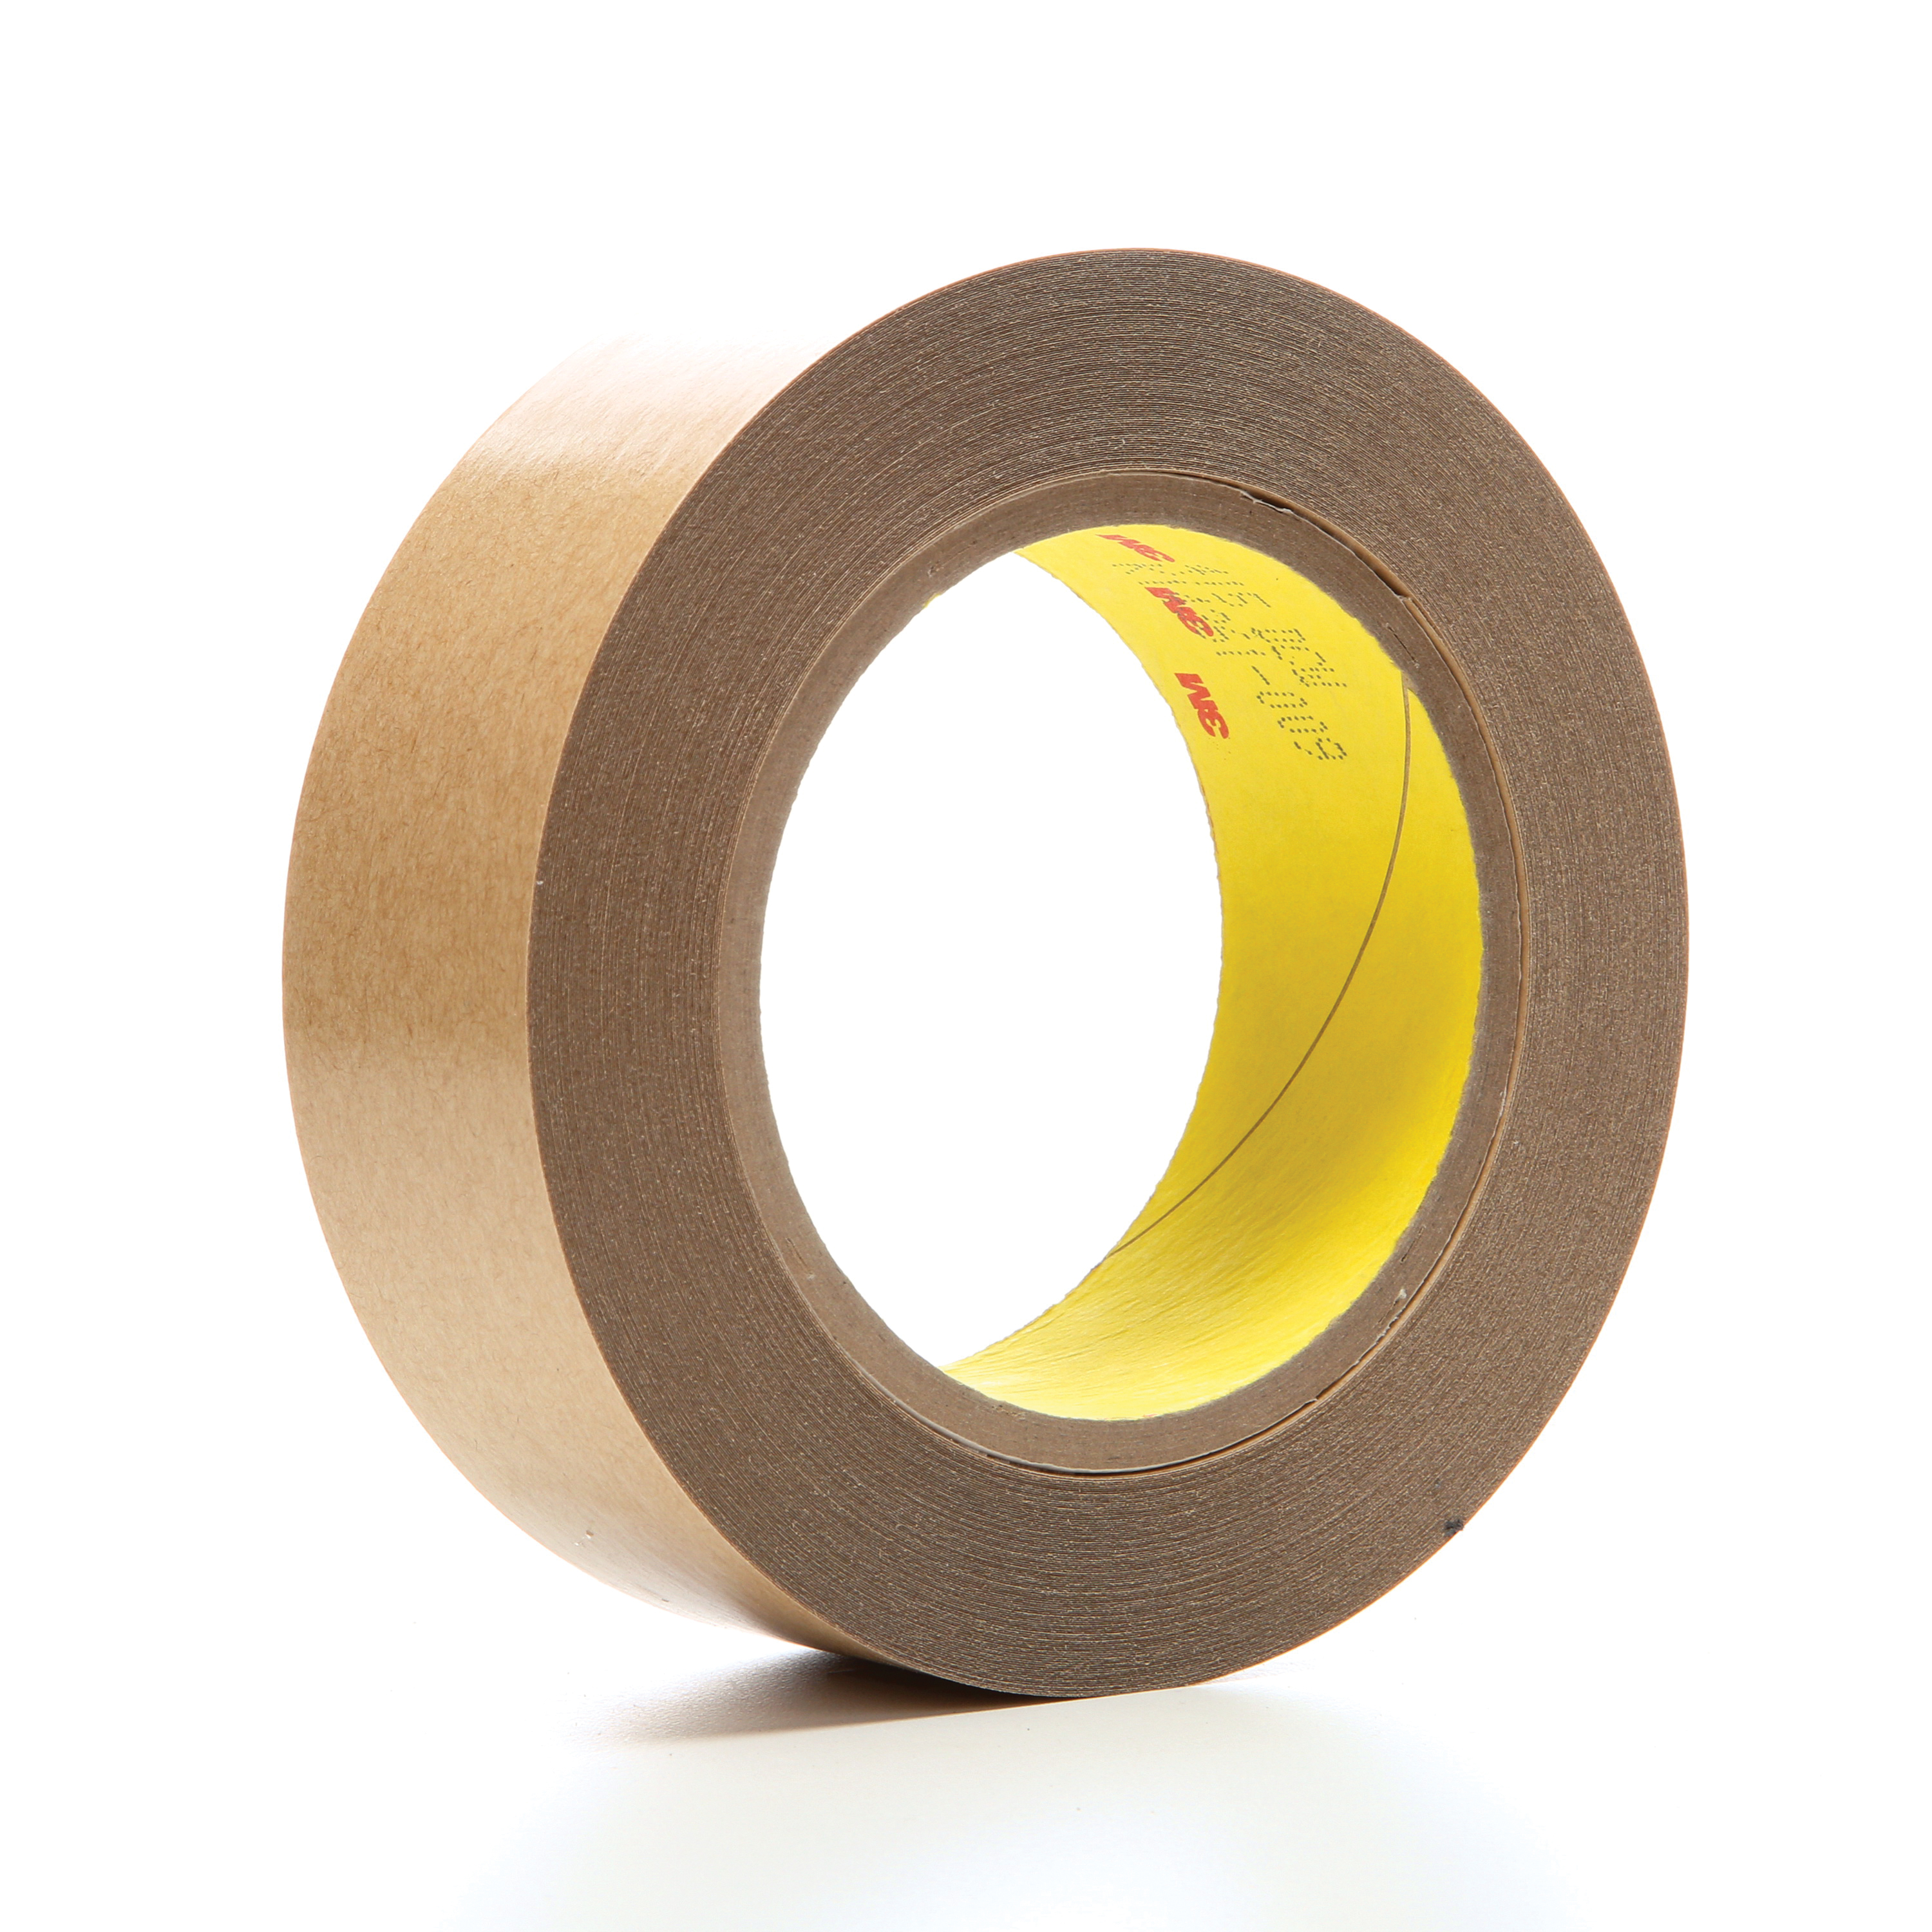 3M™ 021200-03324 Non-Repulpable Double Coated Splicing Tape, 36 yd L x 1-1/2 in W, 4 mil THK, 400HT Acrylic Adhesive, Polyester Film Backing, Clear